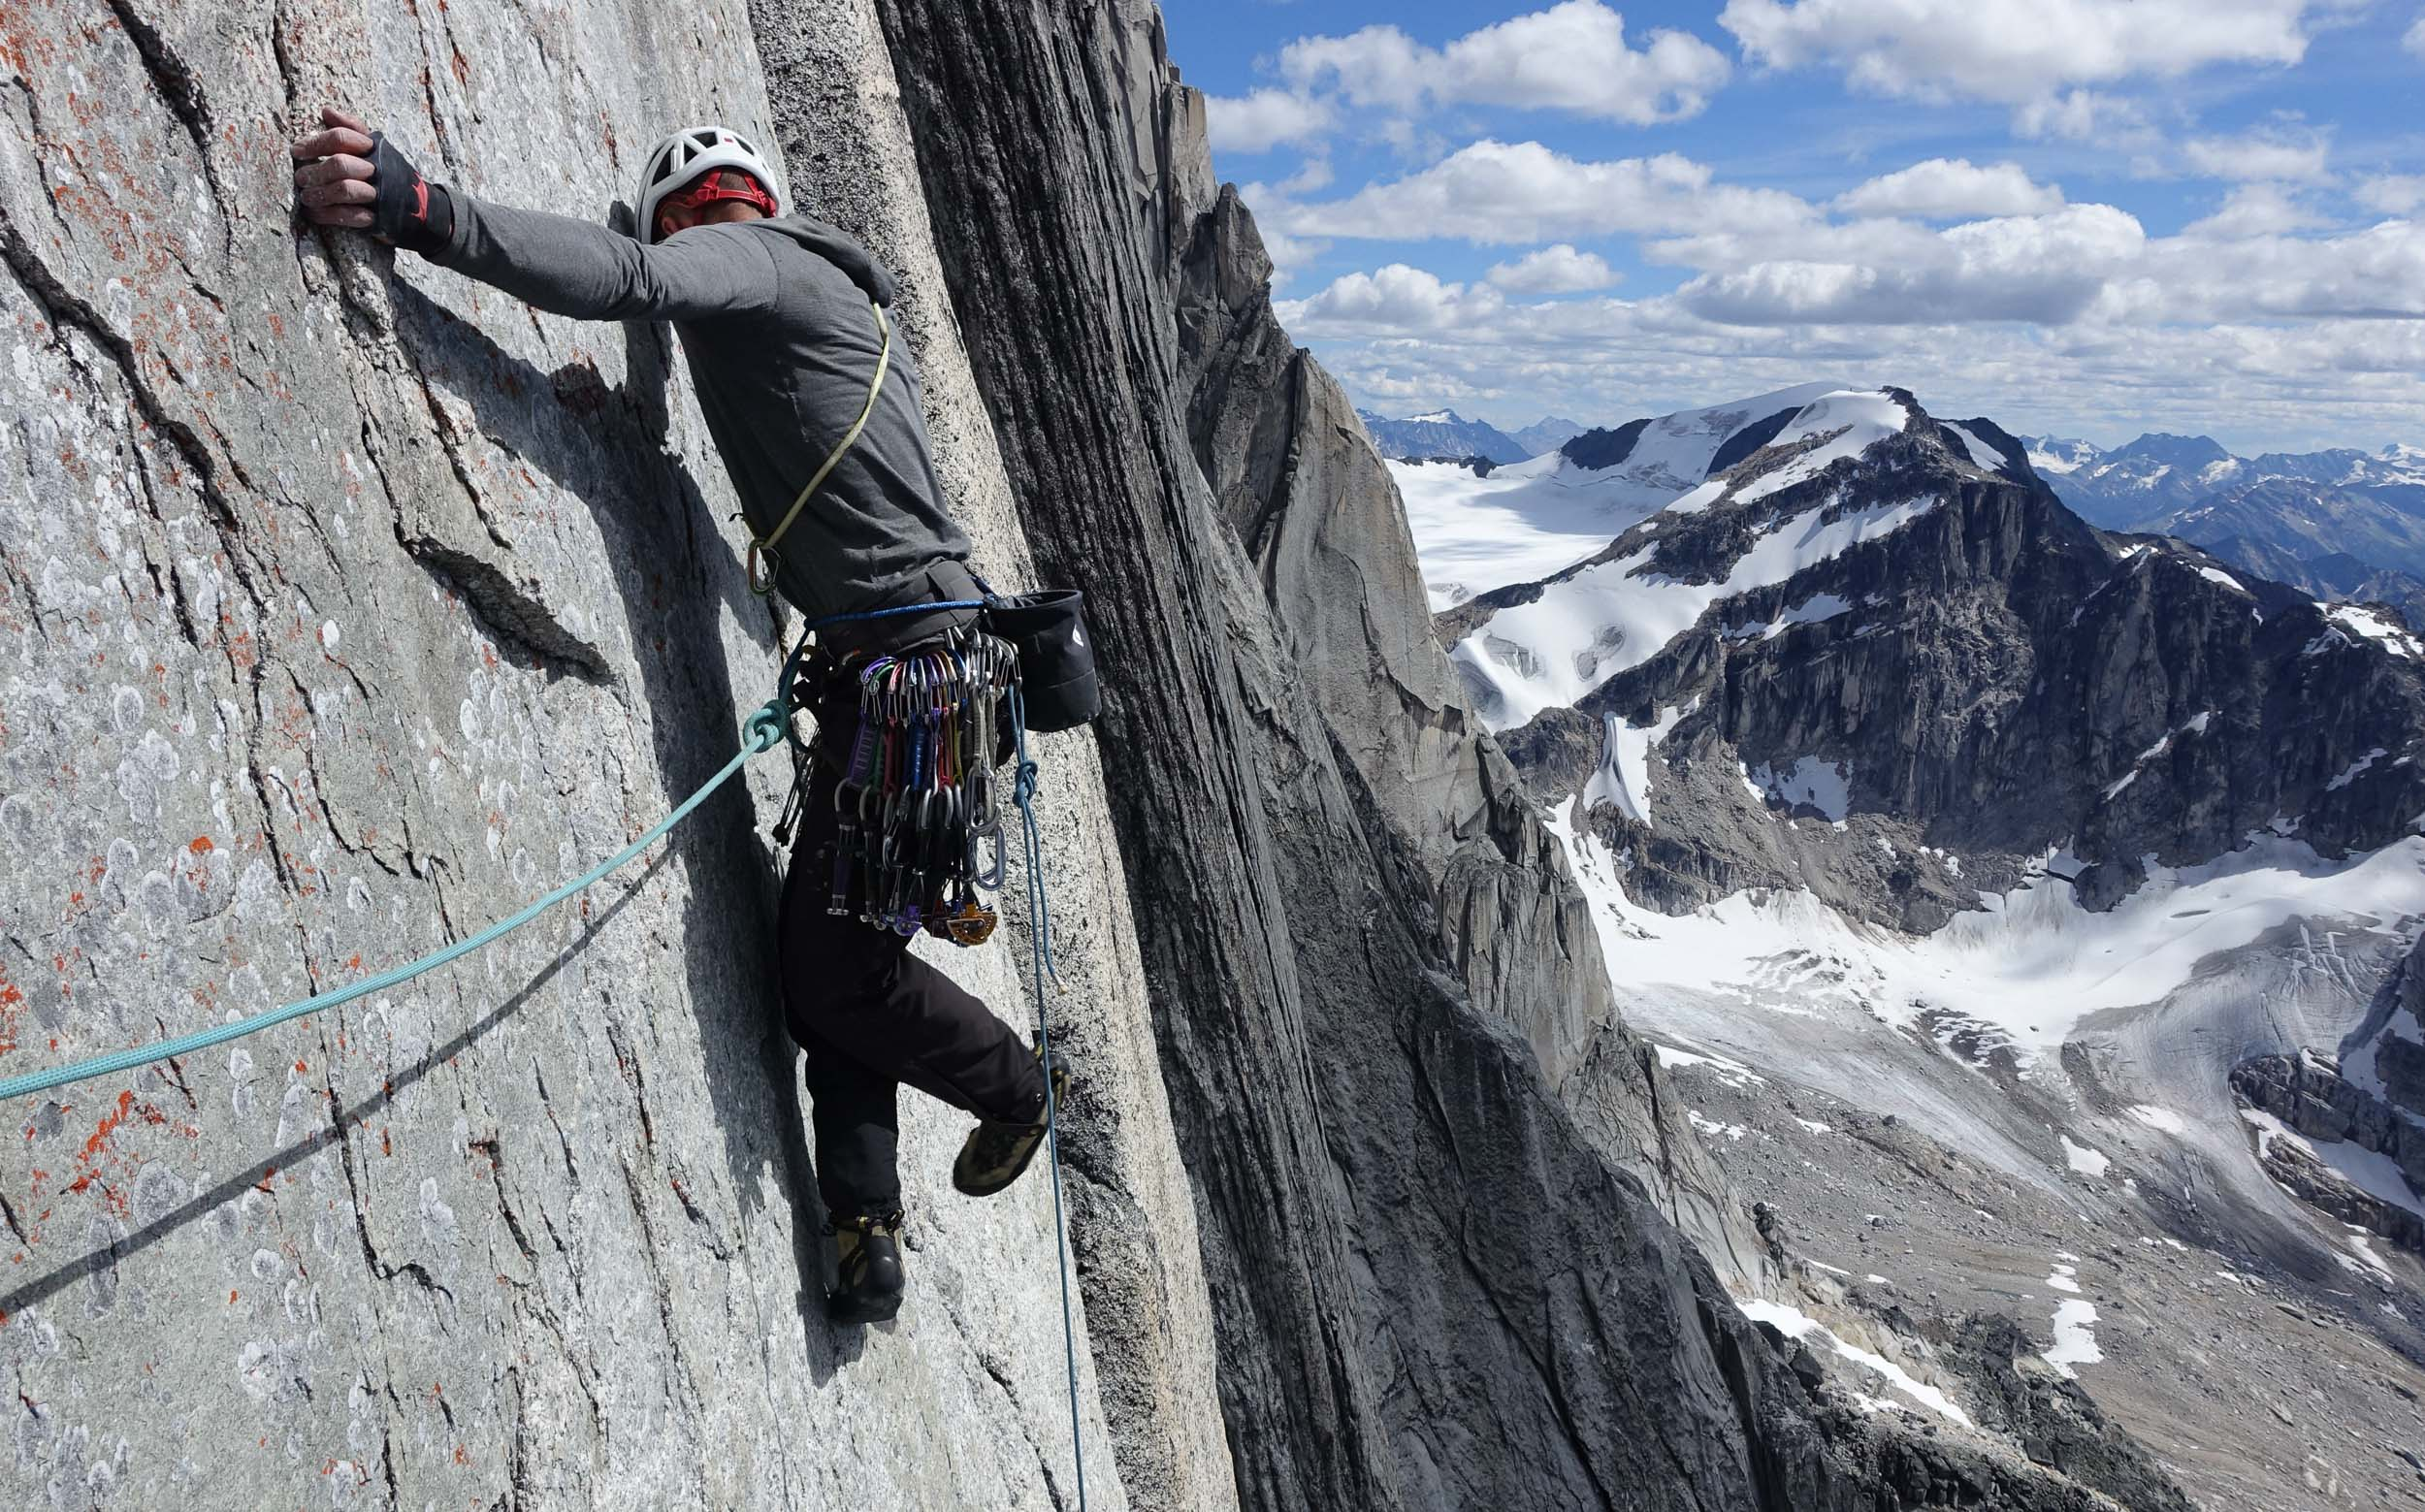 Maury working out a traverse pitch high on the Armageddon.